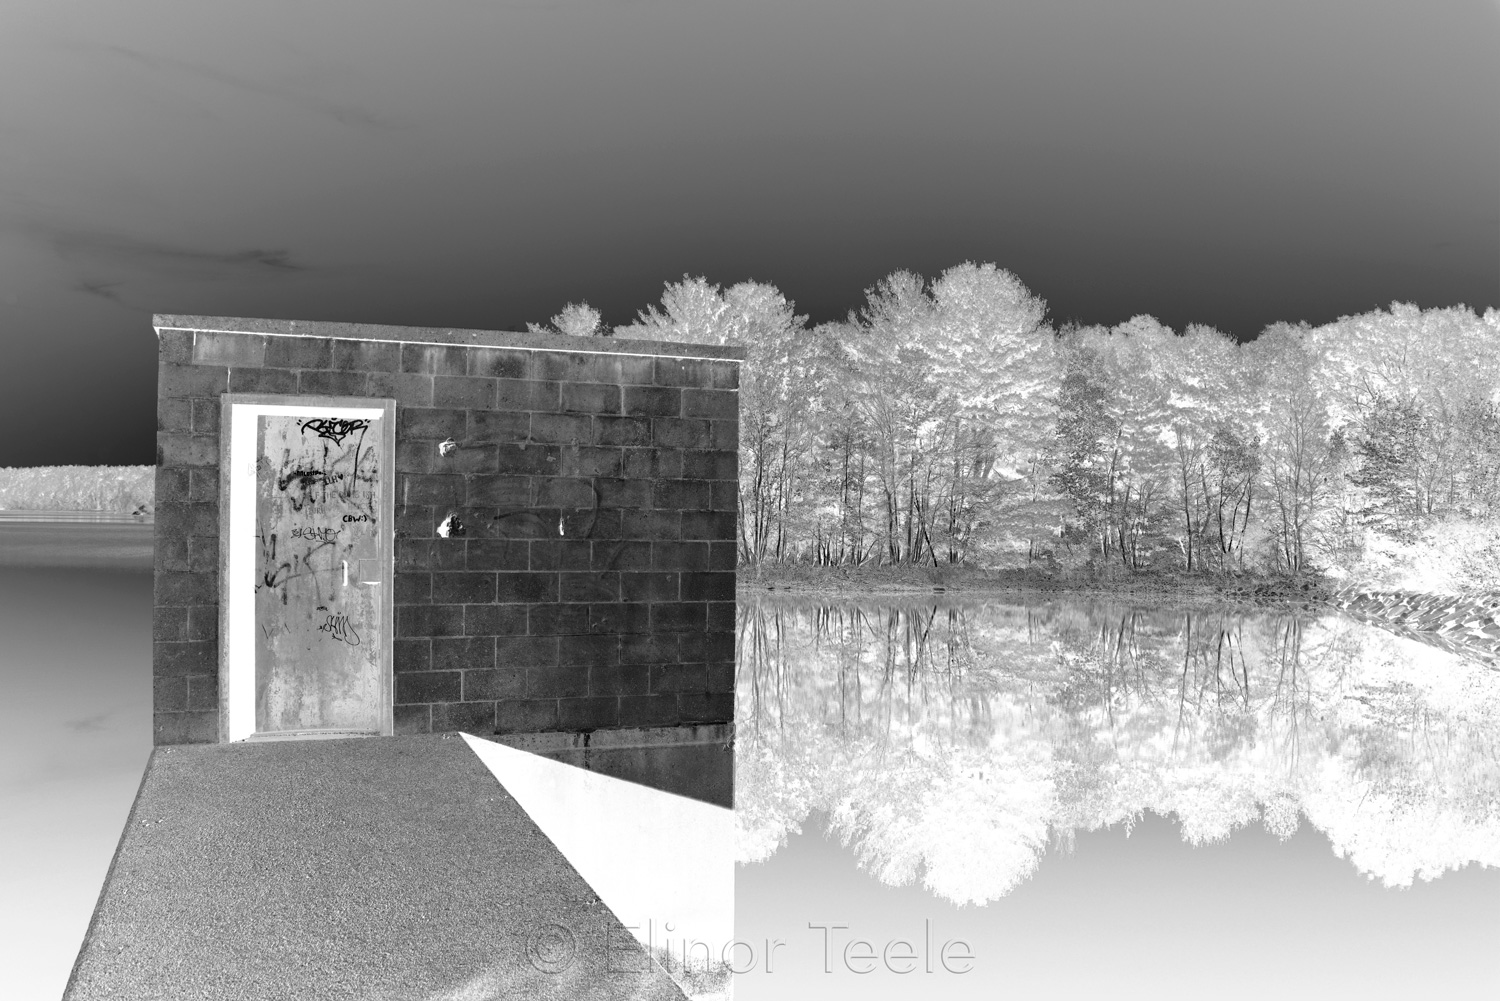 Goose Cove Reservoir - Black & White Abstract